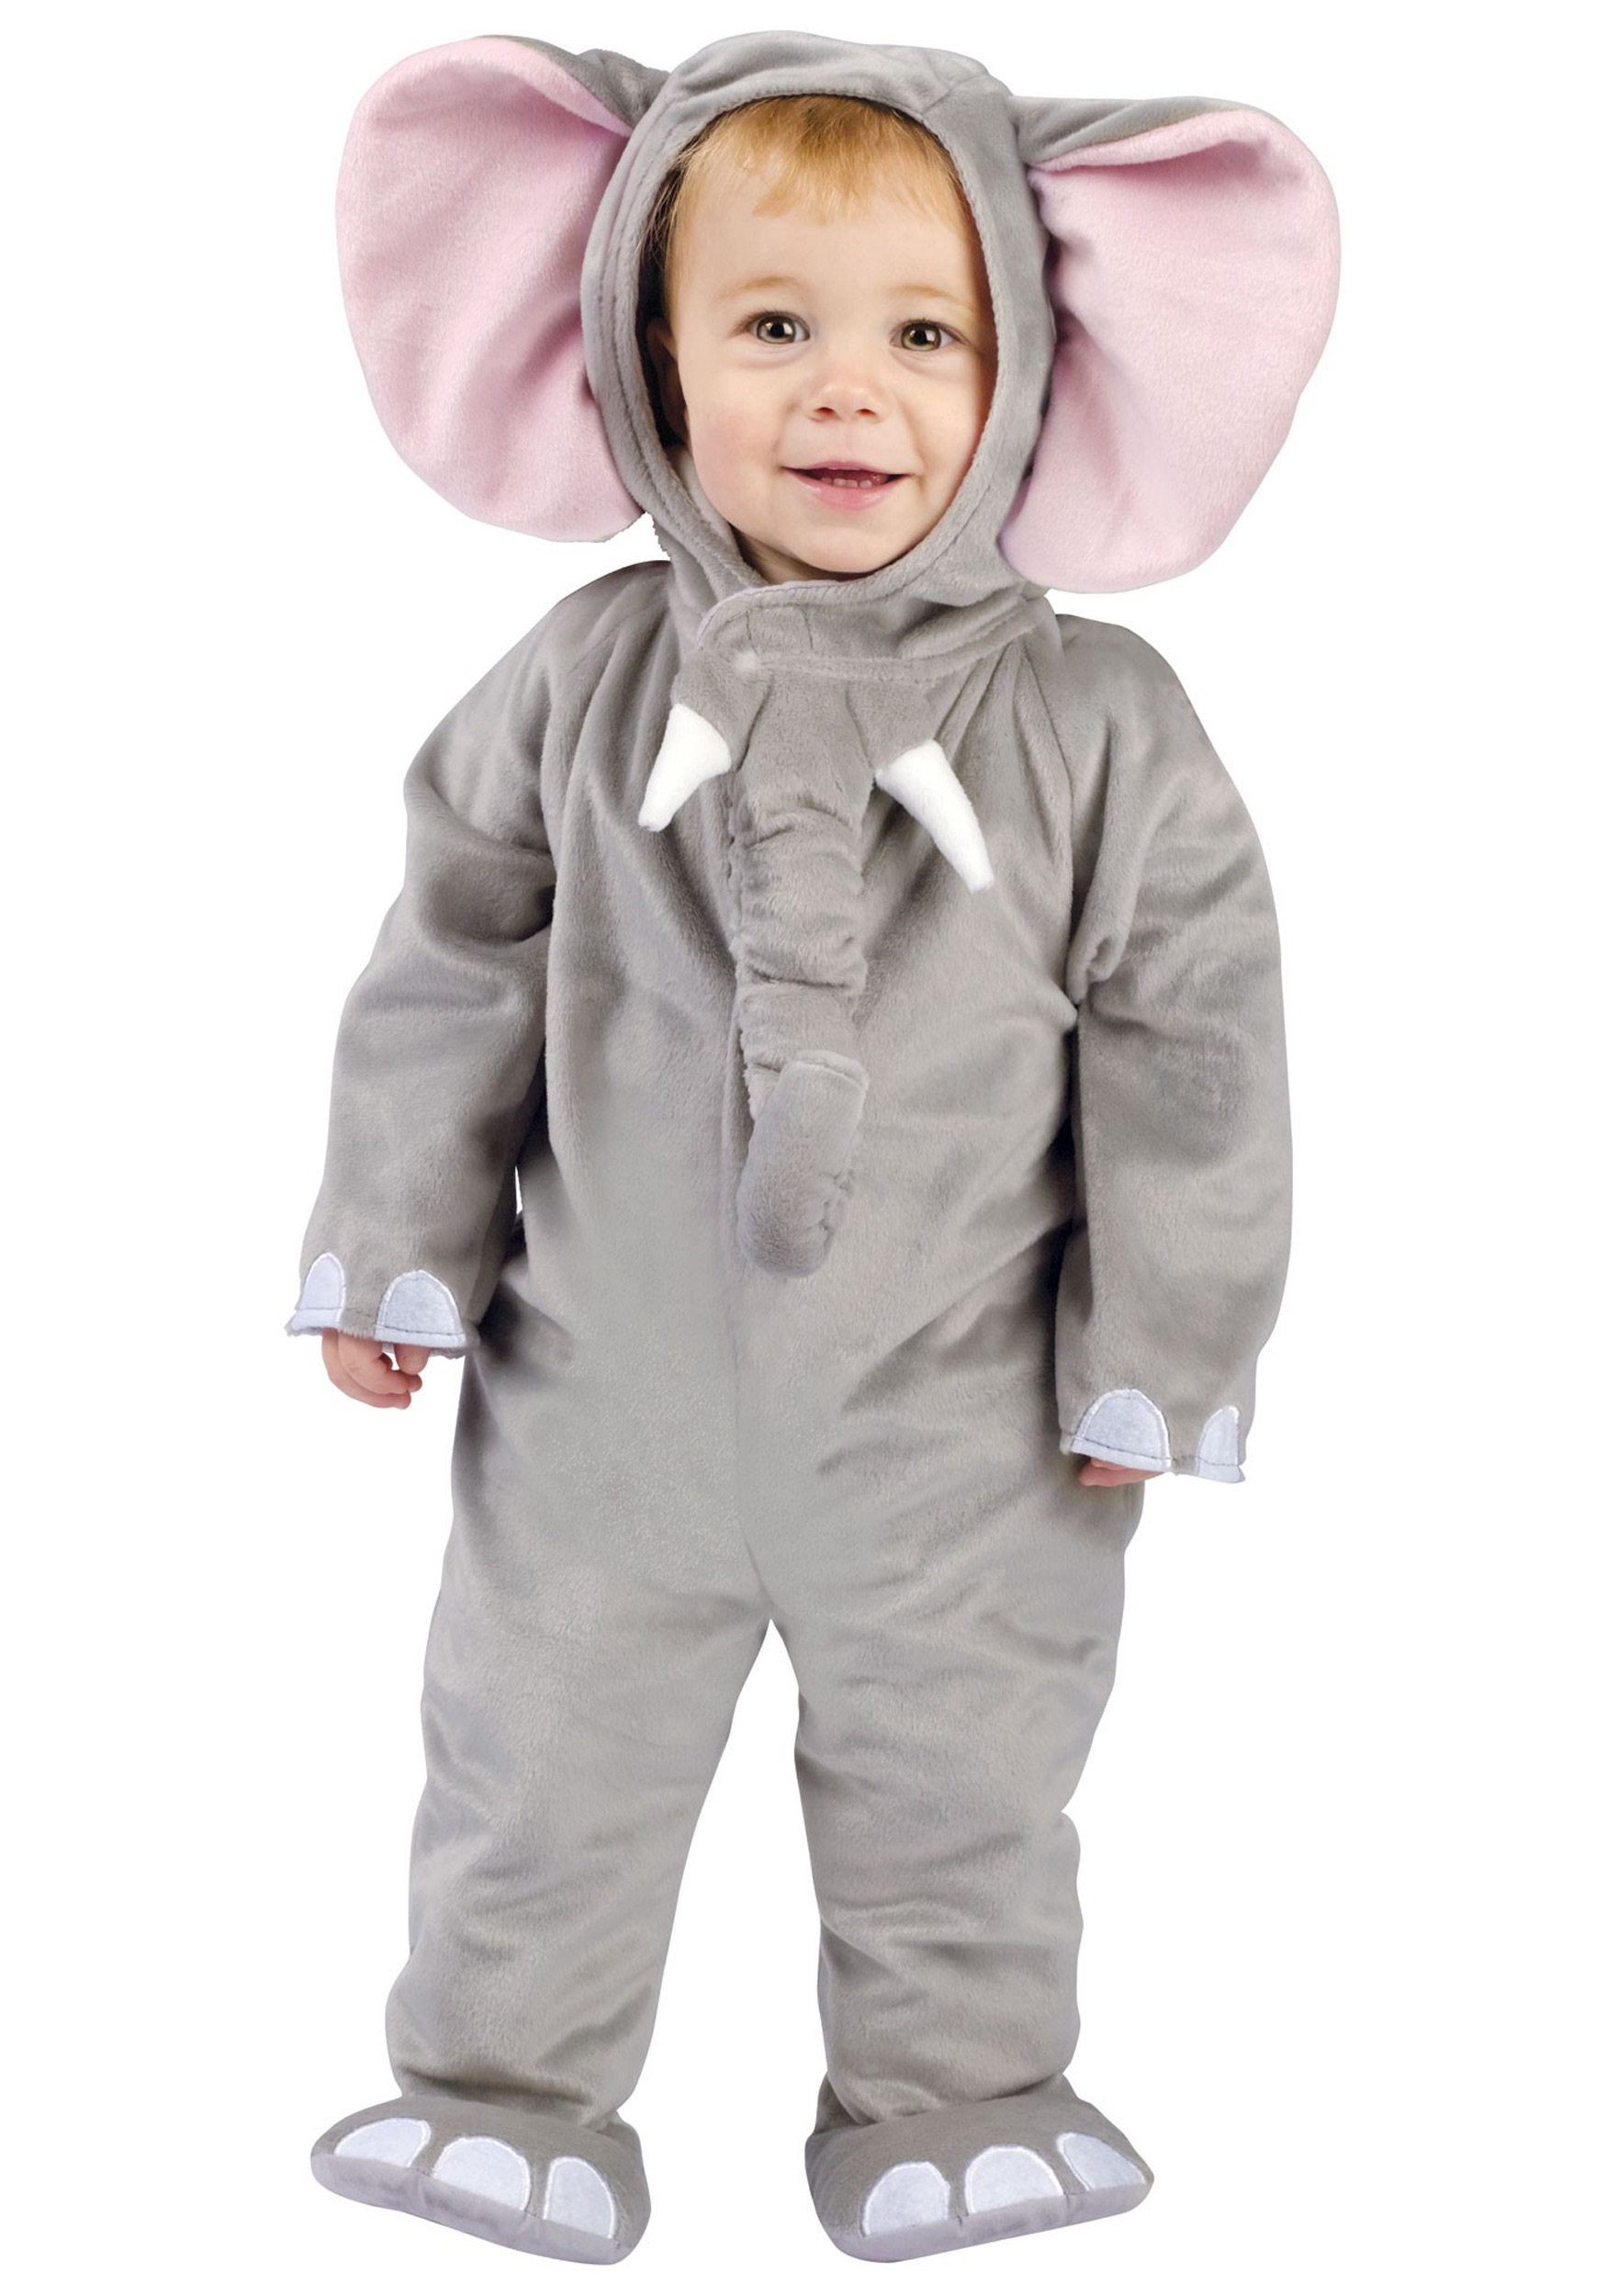 Lil/' Elephant Elite Collection Infant Toddler Costume Dumbo Jungle Theme Party